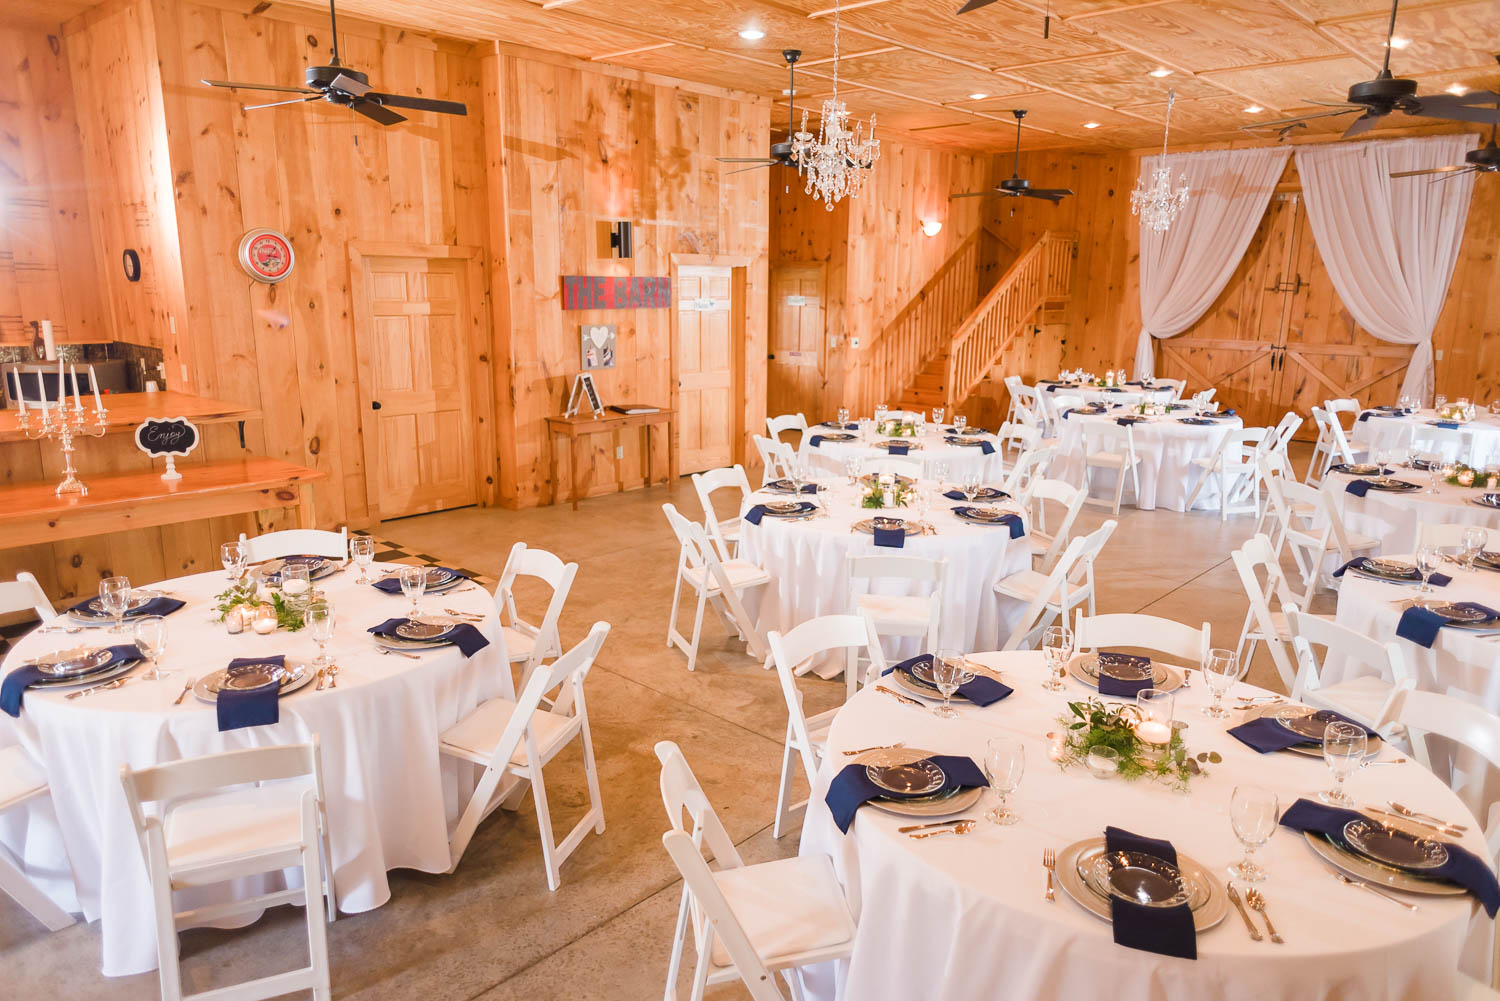 another reception inside view of the barn at Sunrise Farm